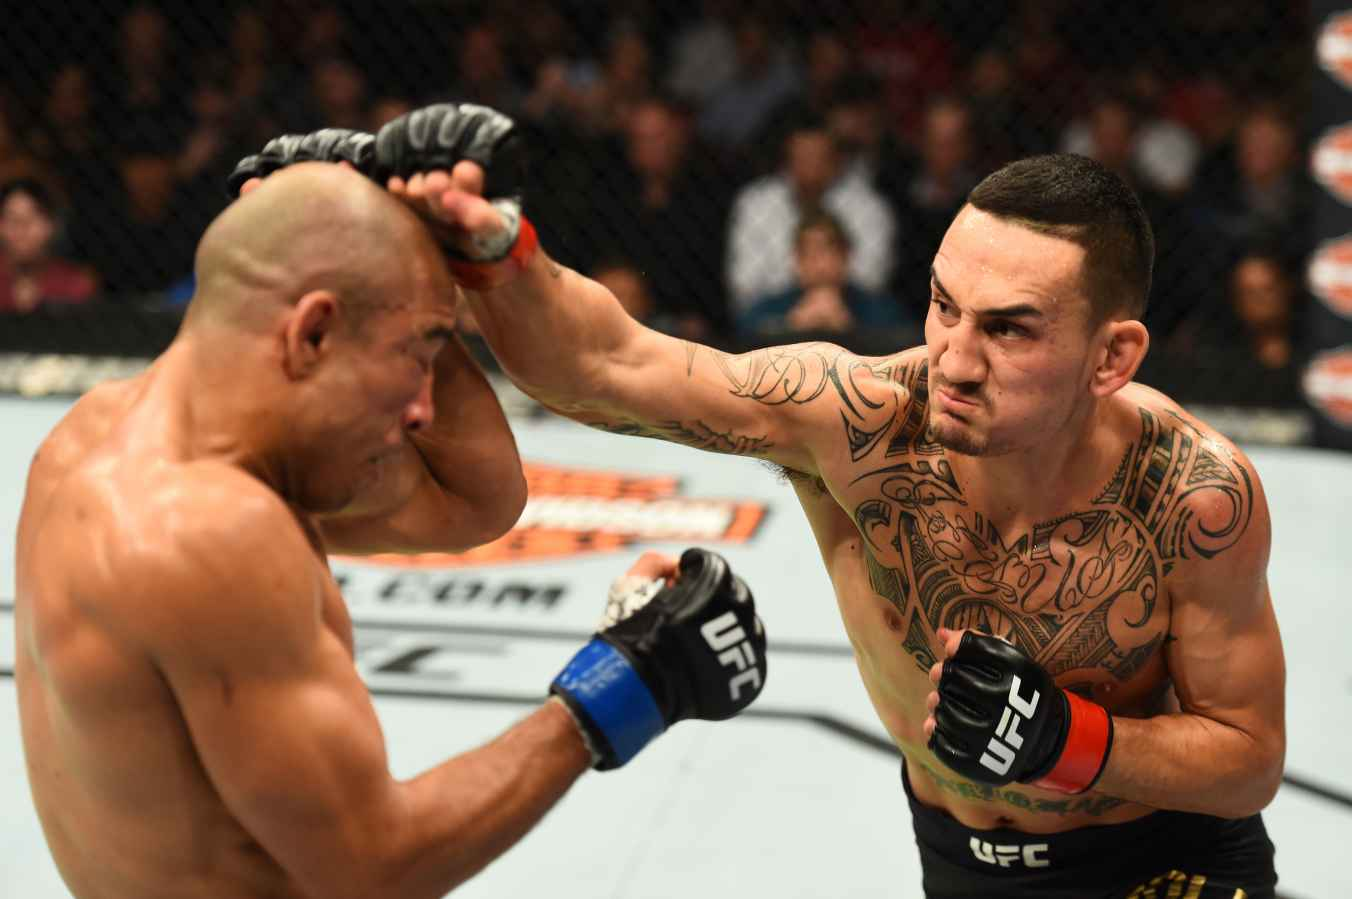 Holloway was all class against Jose aldo at UFC 218